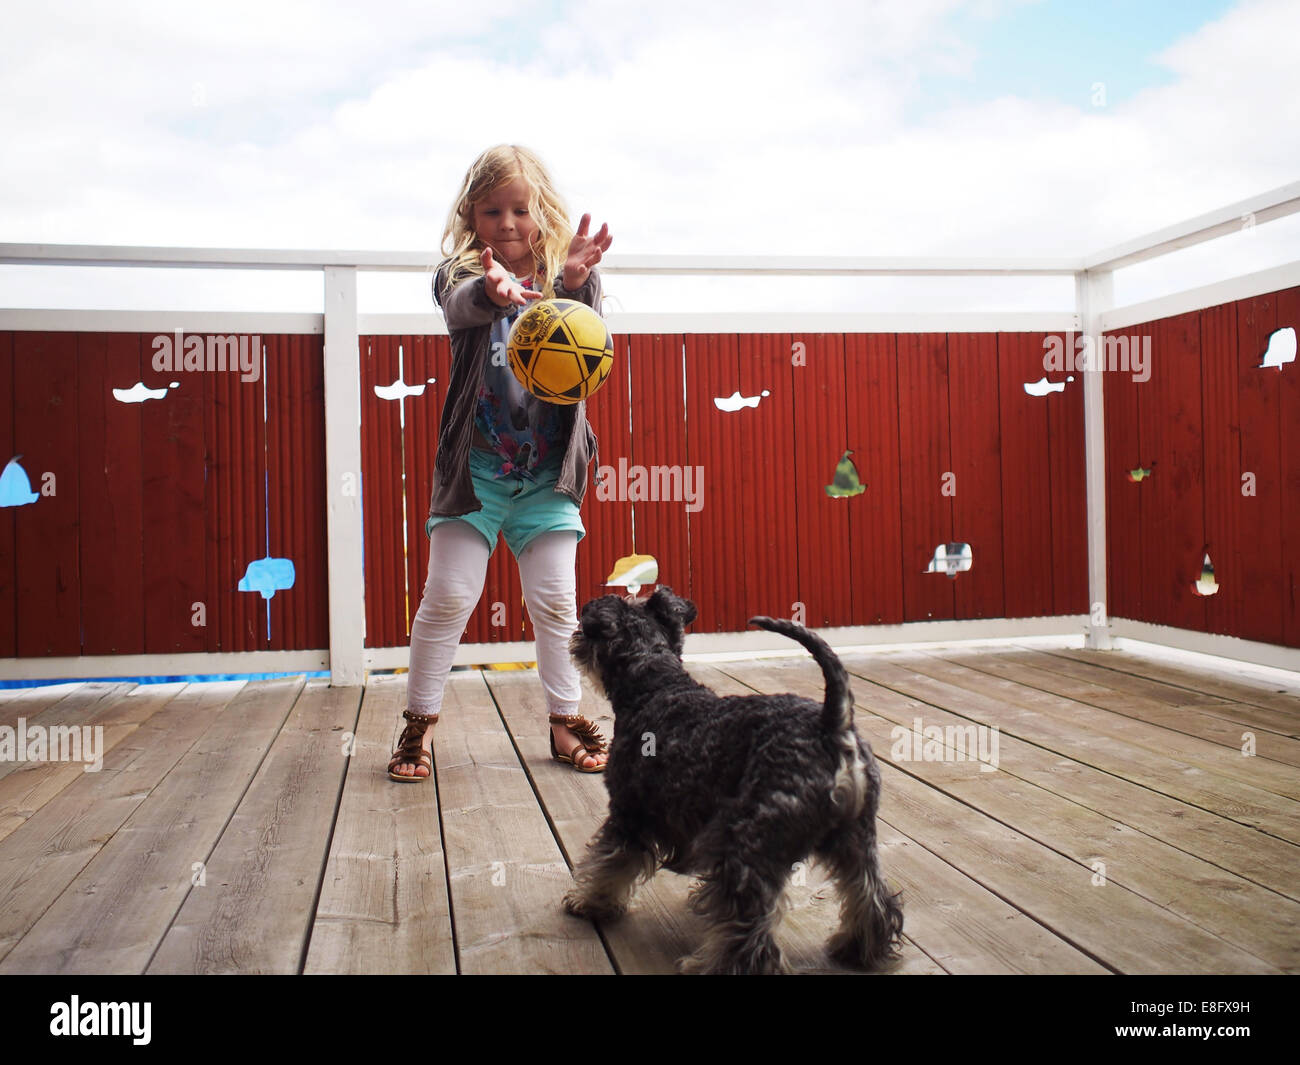 Jeune fille (6-7 ans) Playing with dog Photo Stock